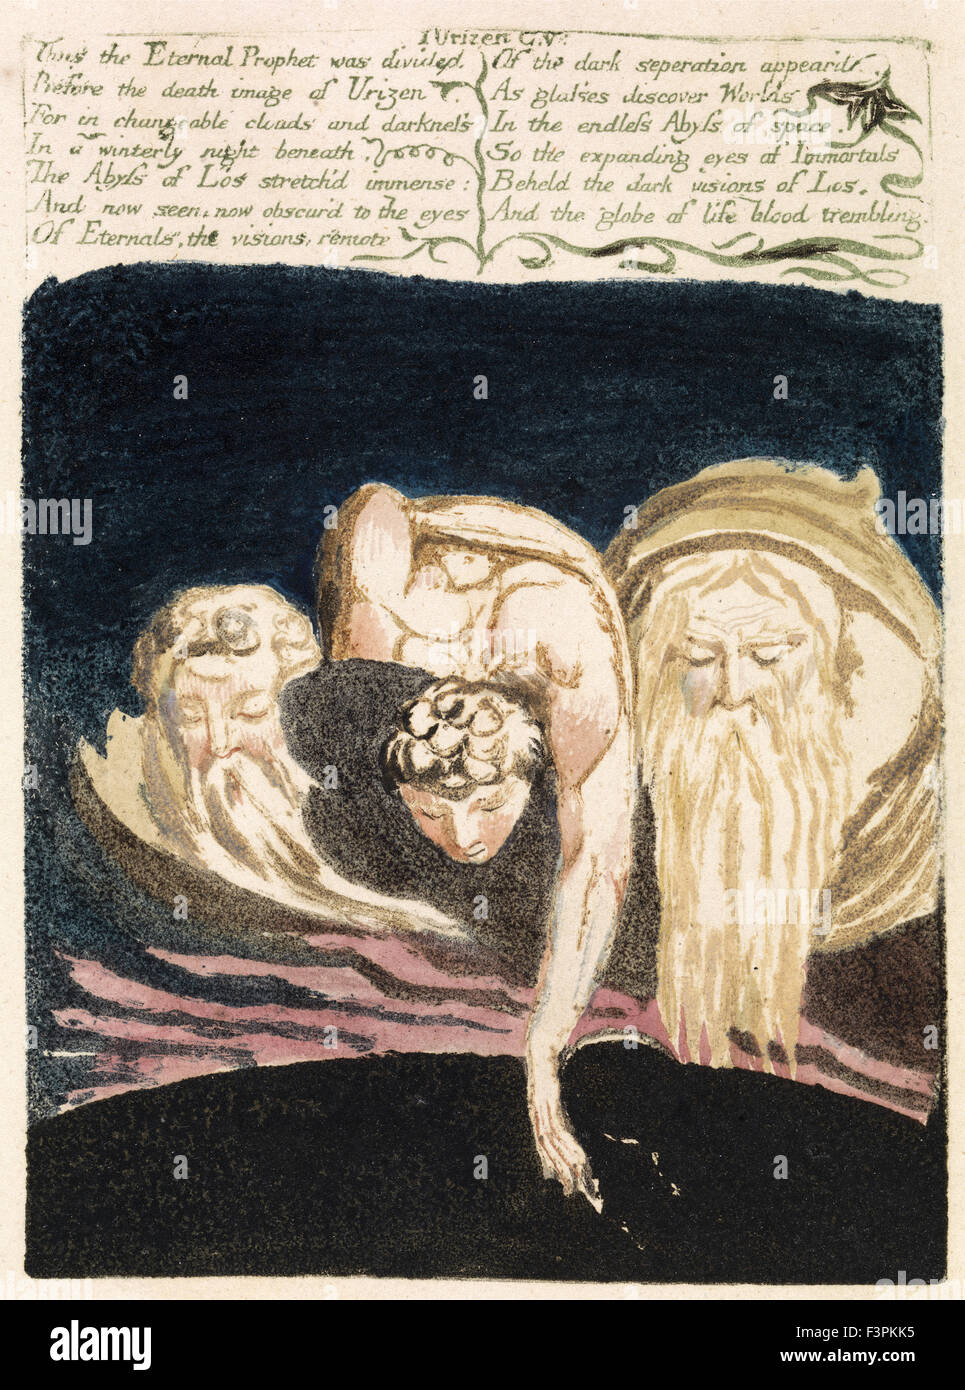 William BLake - The First Book of Urizen, Plate 13 - Thus the Eternal Prophet was divided - Stock Image